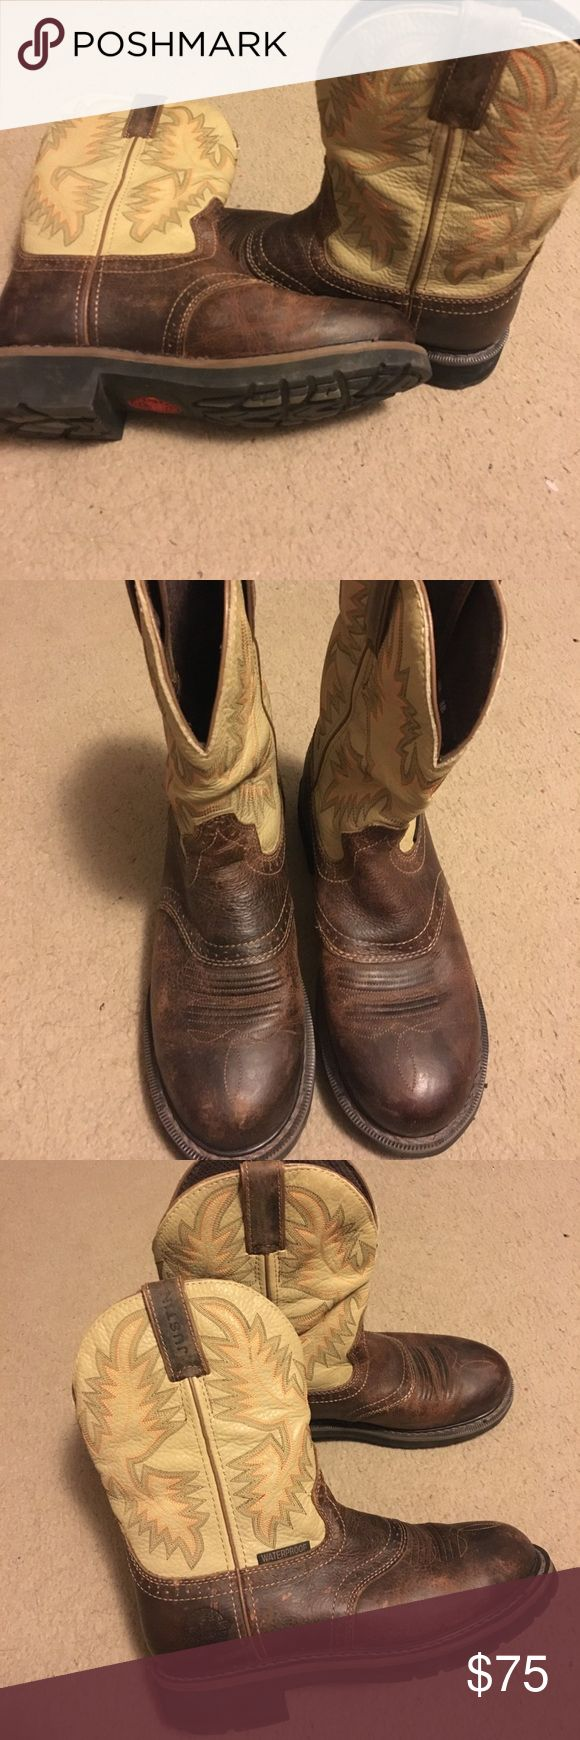 Justin leather work gloves - Boots Justin S Work Boots Oil Resistant Worn Twice Not Even Broke In Yet Still Stiff